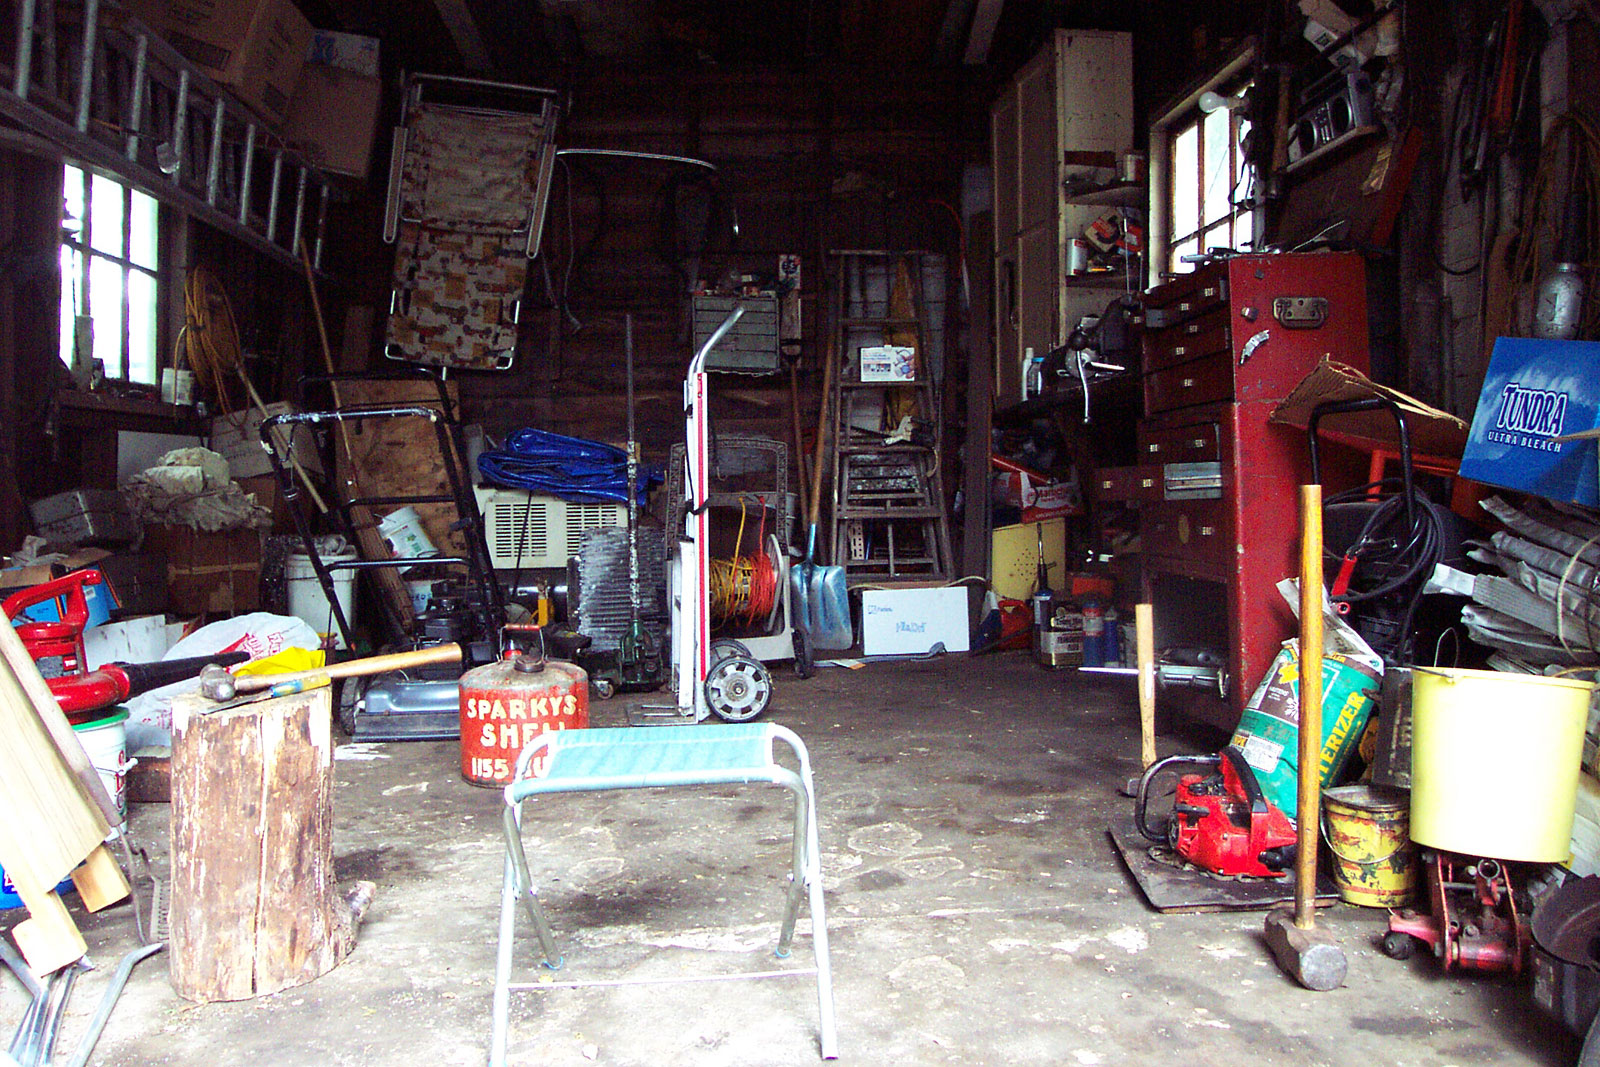 Inside Sparky's garage on Hall Street in Rochester, New York